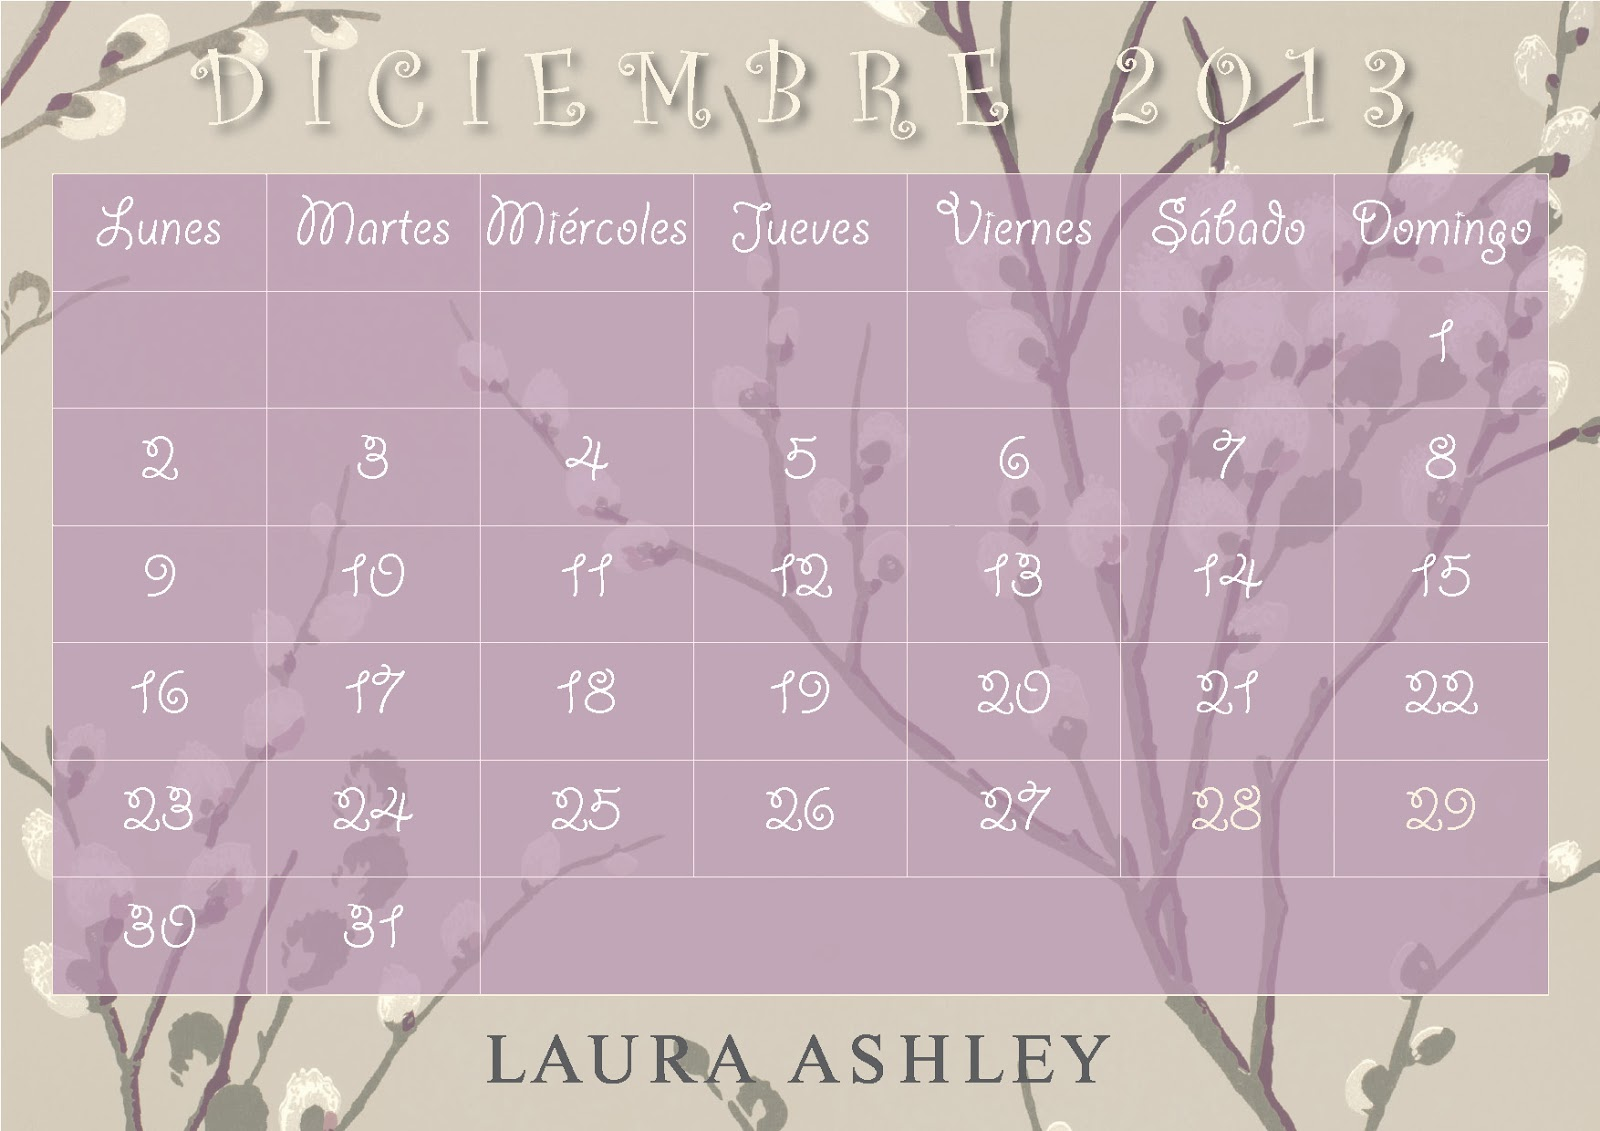 Calendario Laura Ashley Diciembre 2013